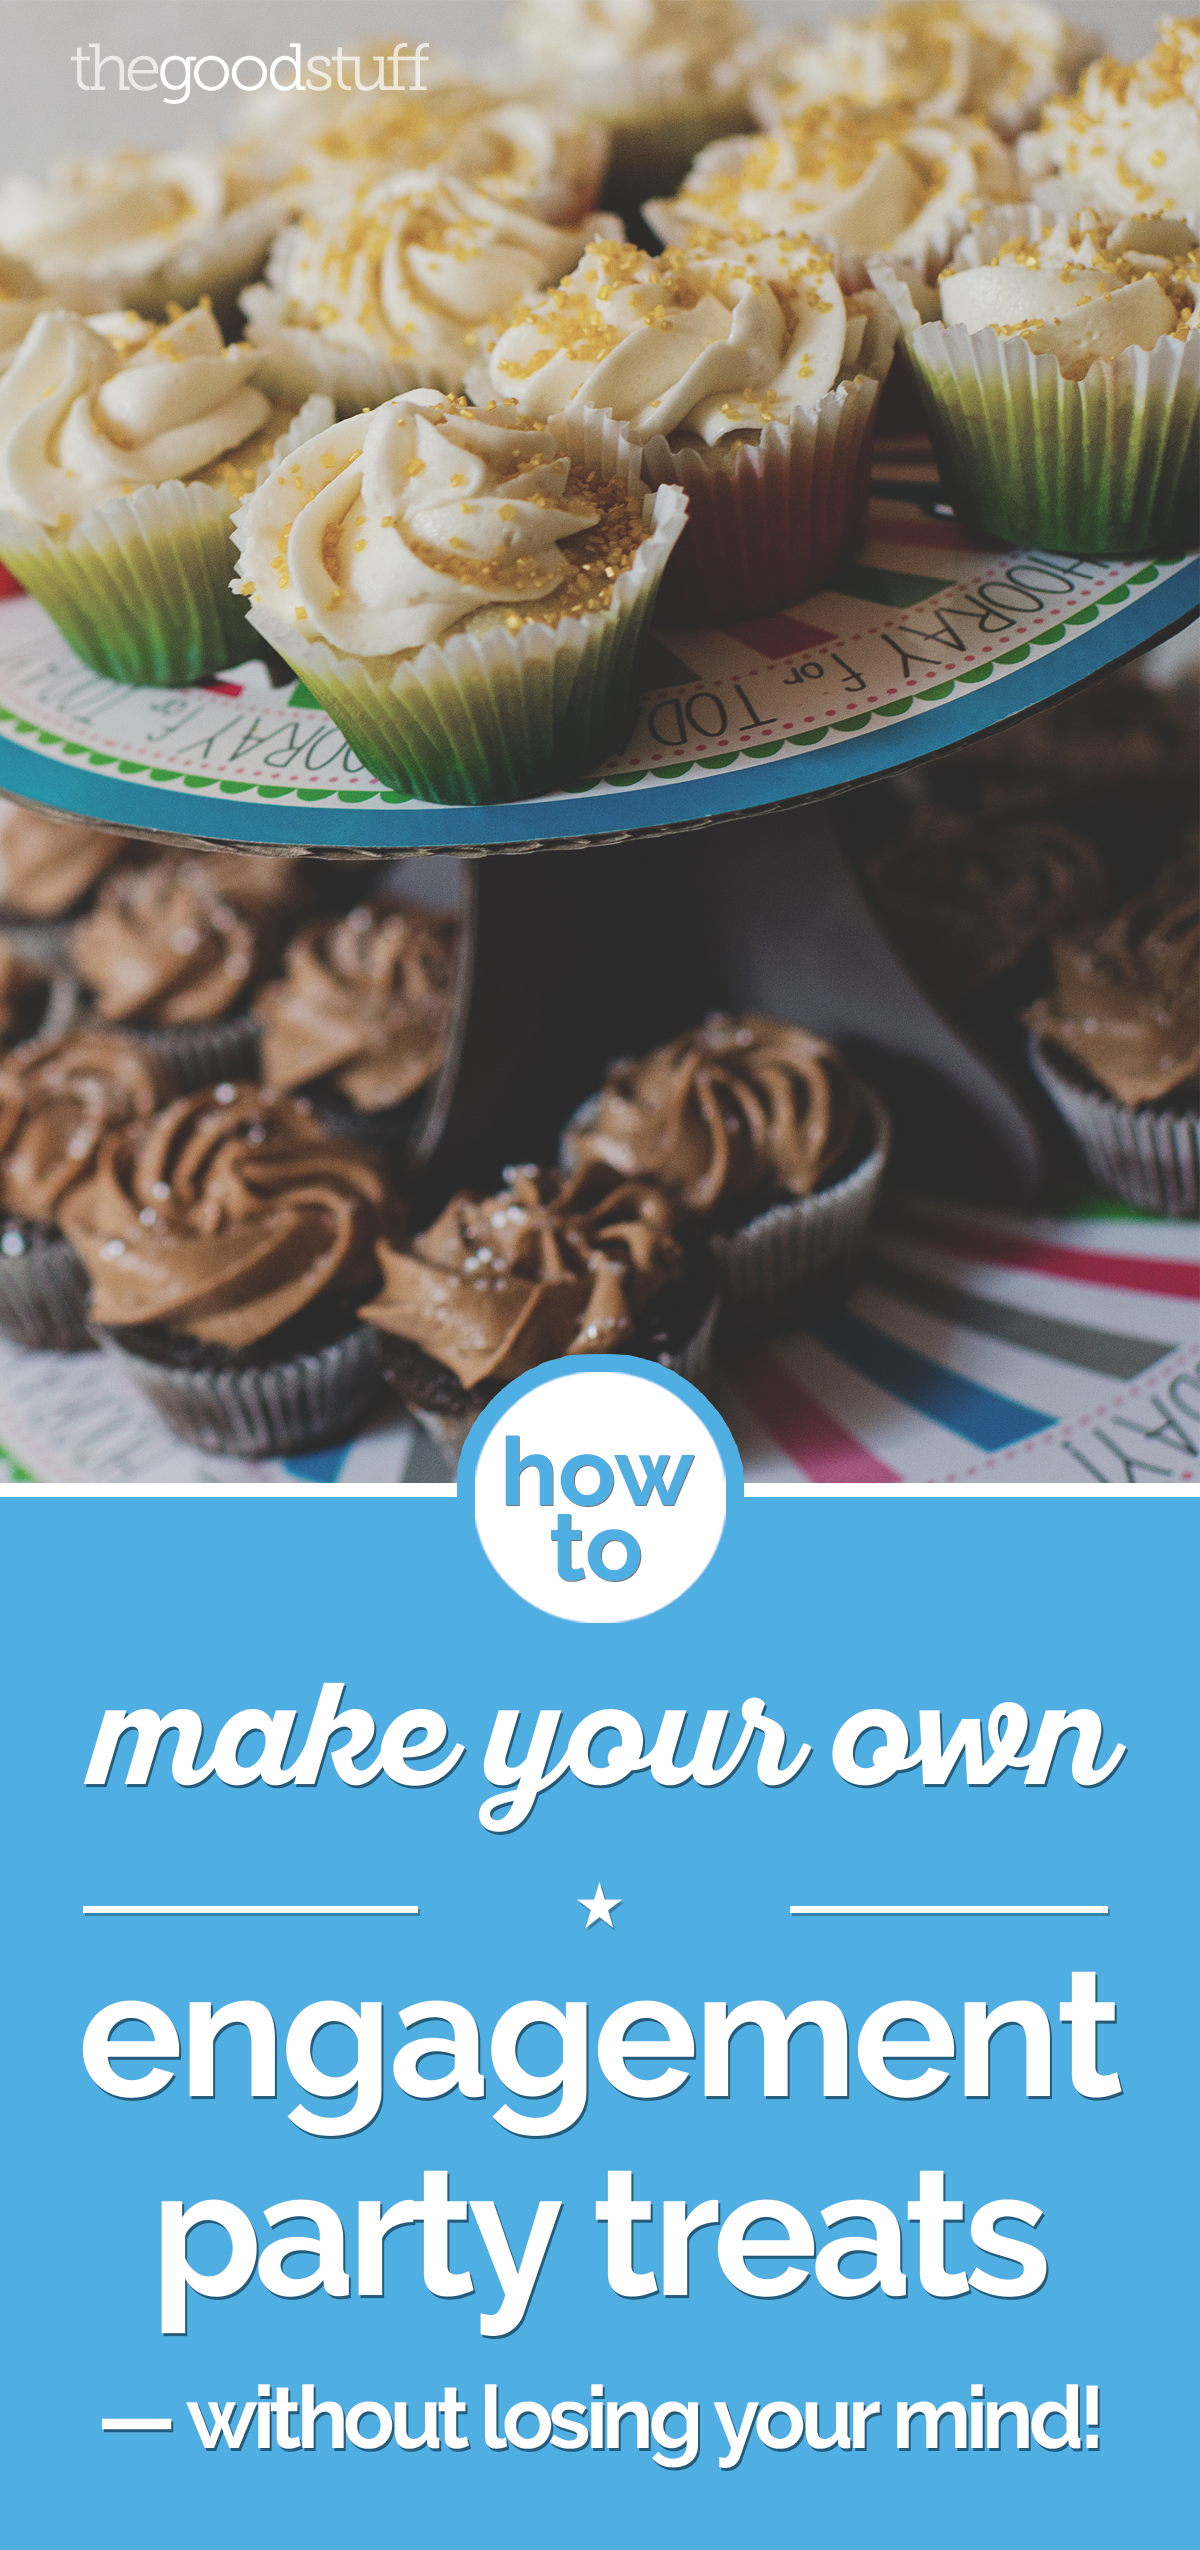 How to Make Your Own Engagement Party Treats — Without Losing Your Mind! | thegoodstuff